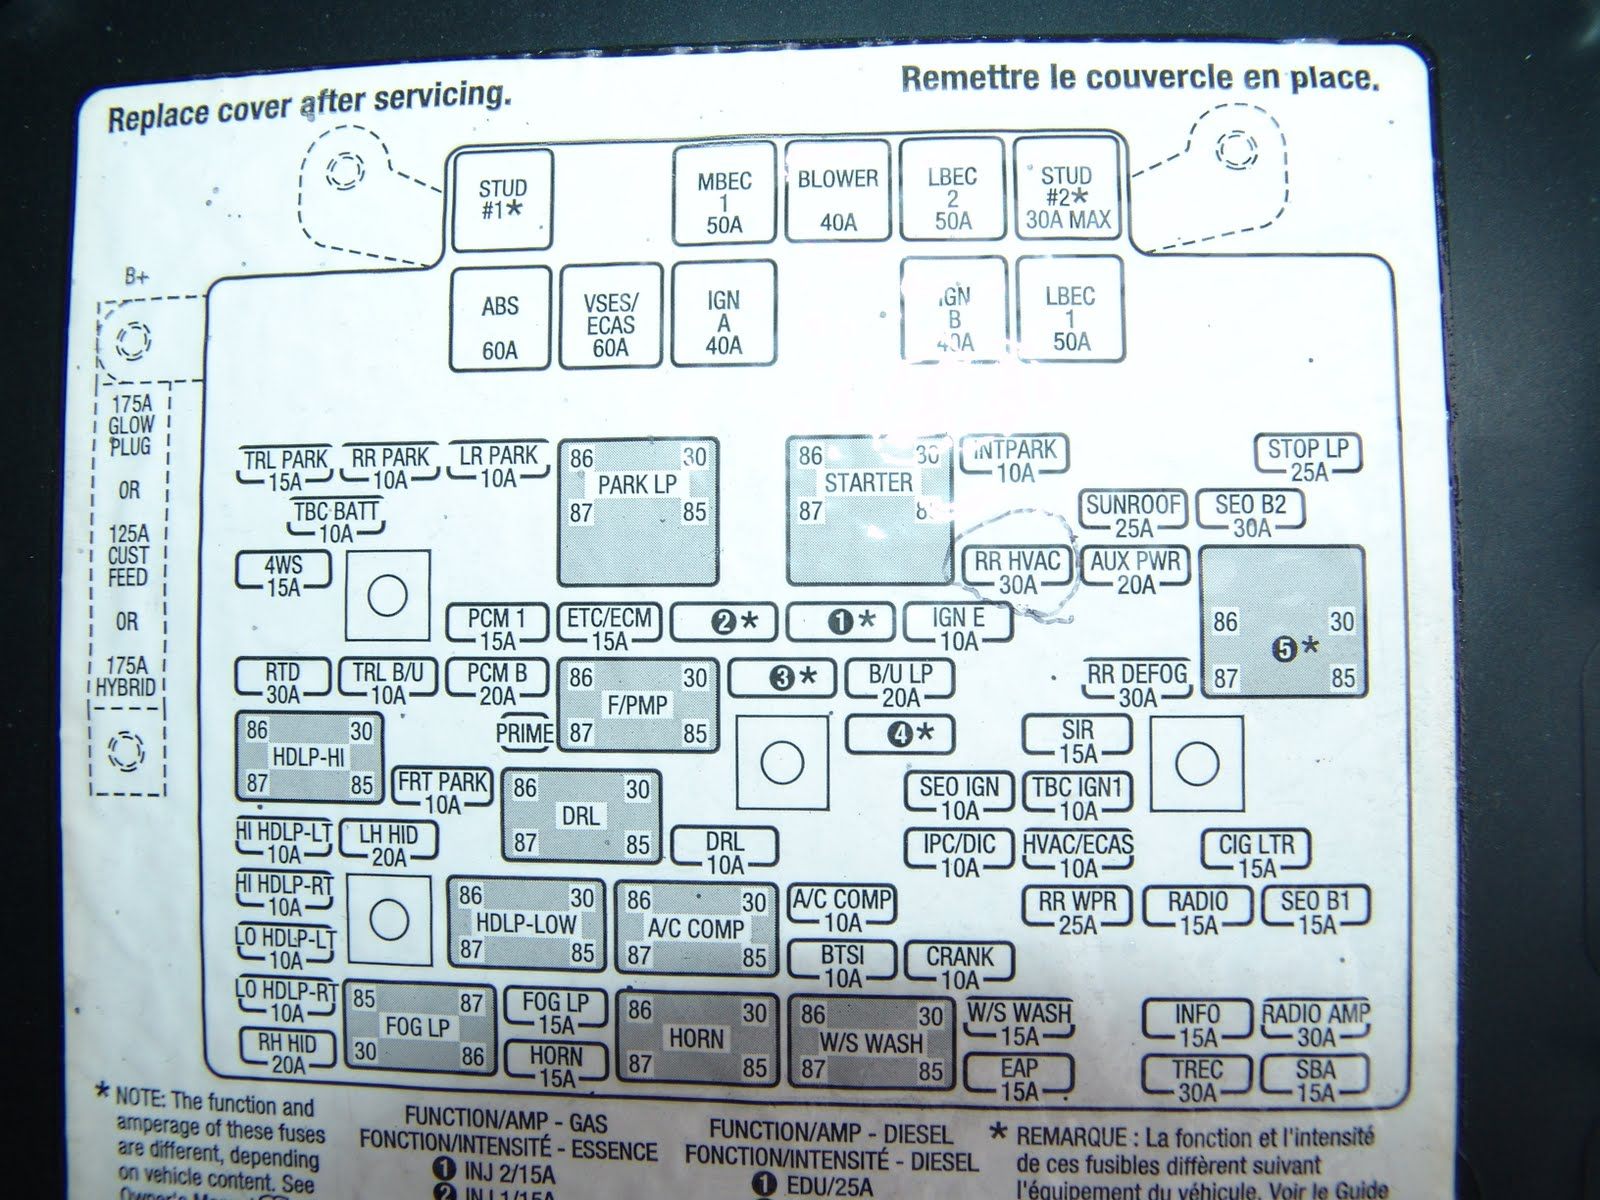 2004 chevy tahoe fuse box diagram mEZFgxa 2004 chevy tahoe fuse box diagram image details 2004 chevy tahoe fuse box diagram at bakdesigns.co